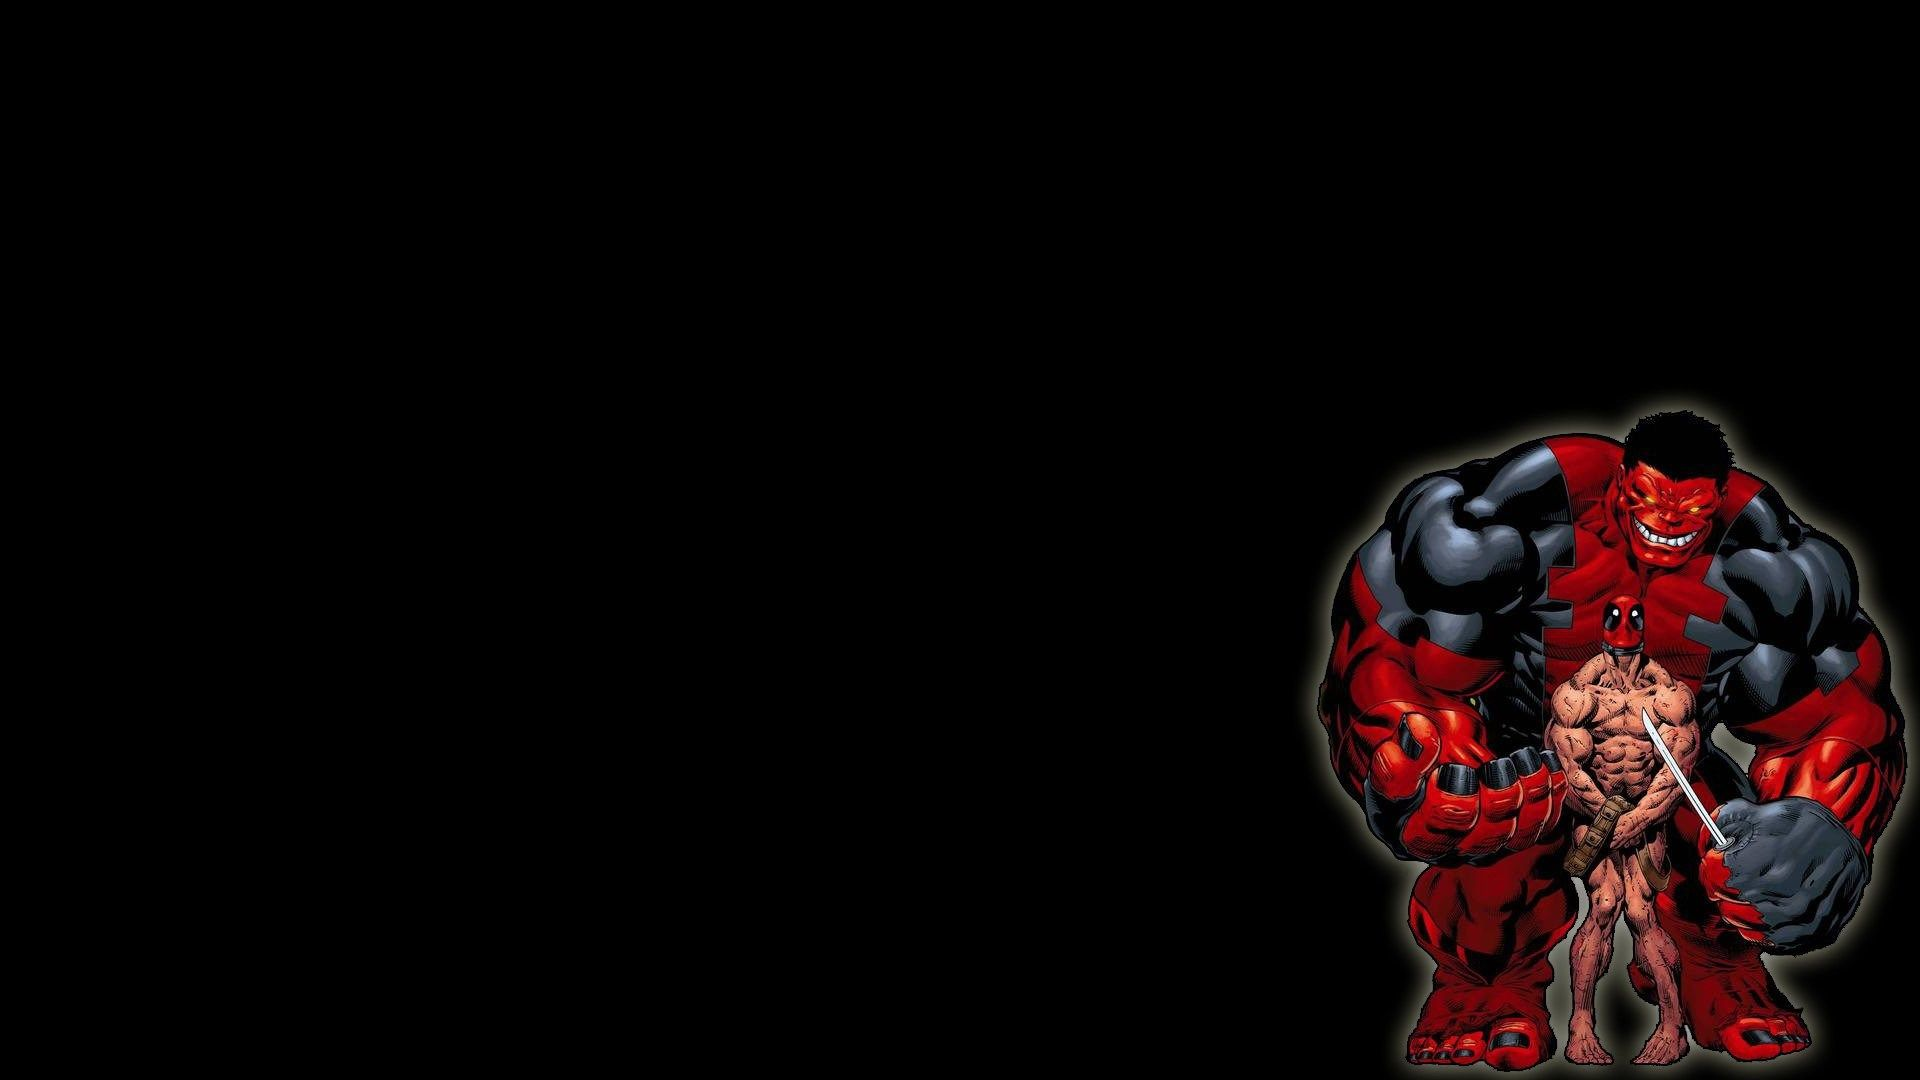 Deadpool Wallpaper For Computer